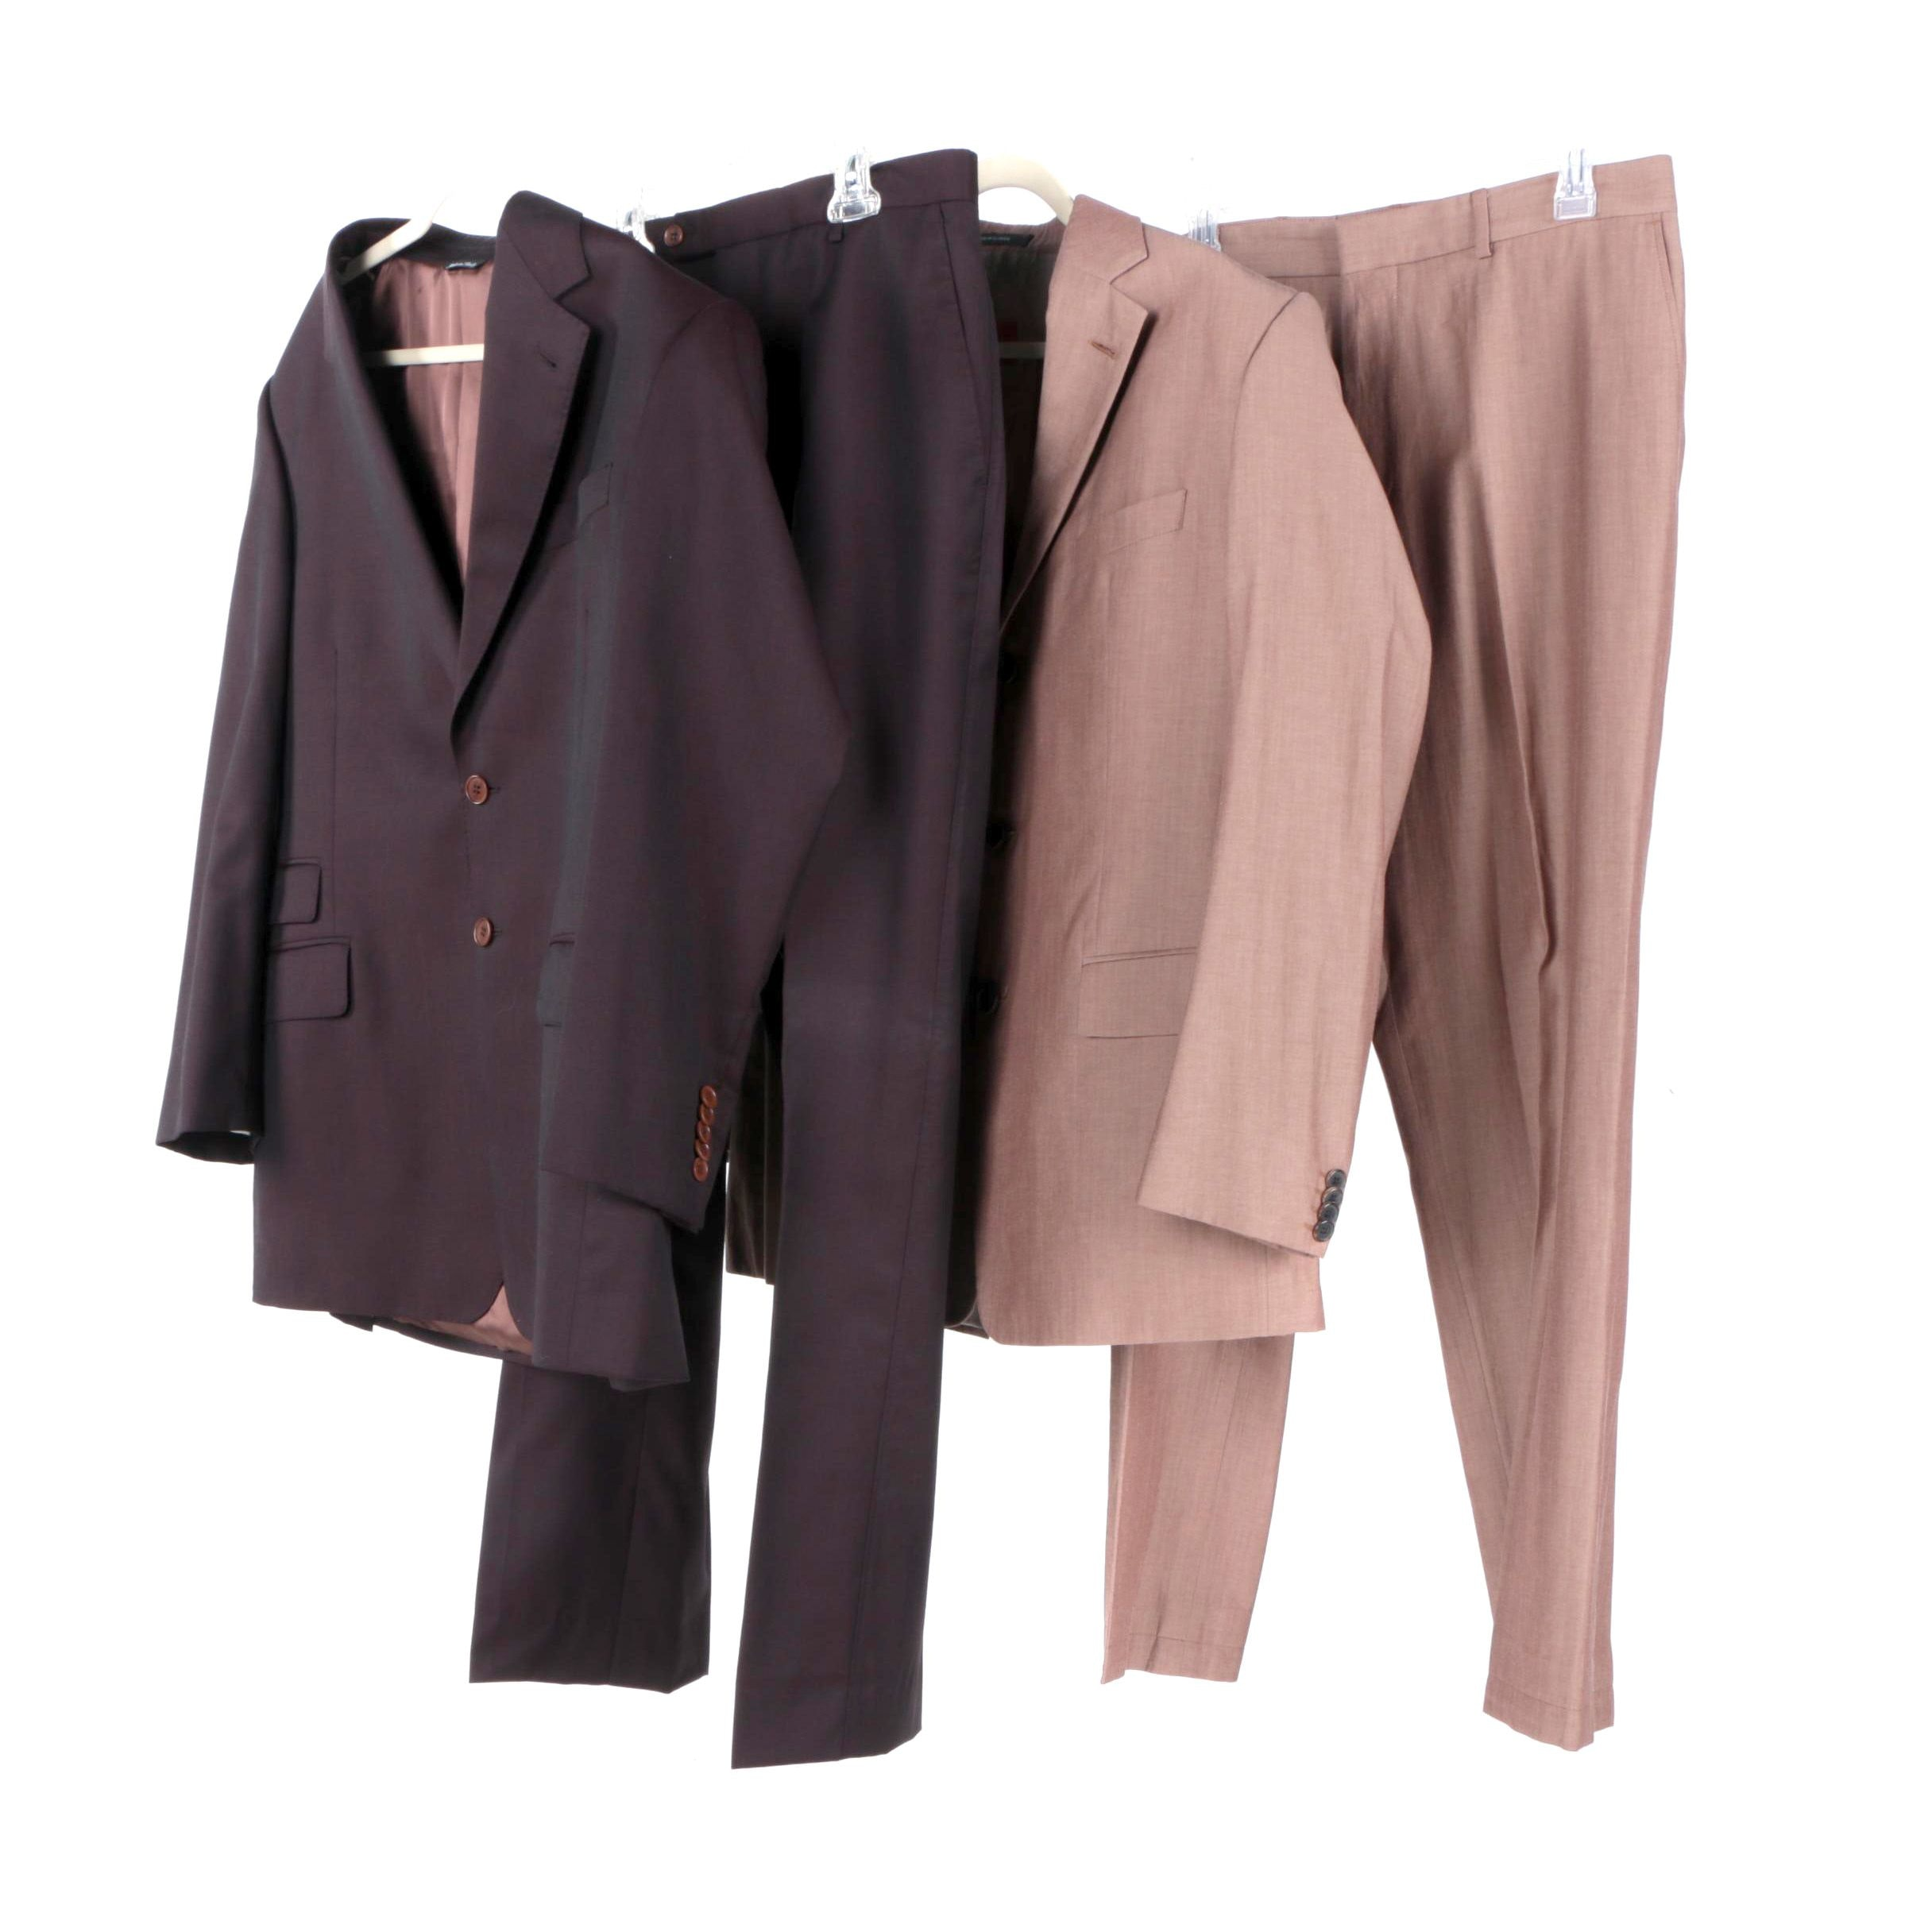 Men's Suits Including Paul Smith London and Hugo by Hugo Boss